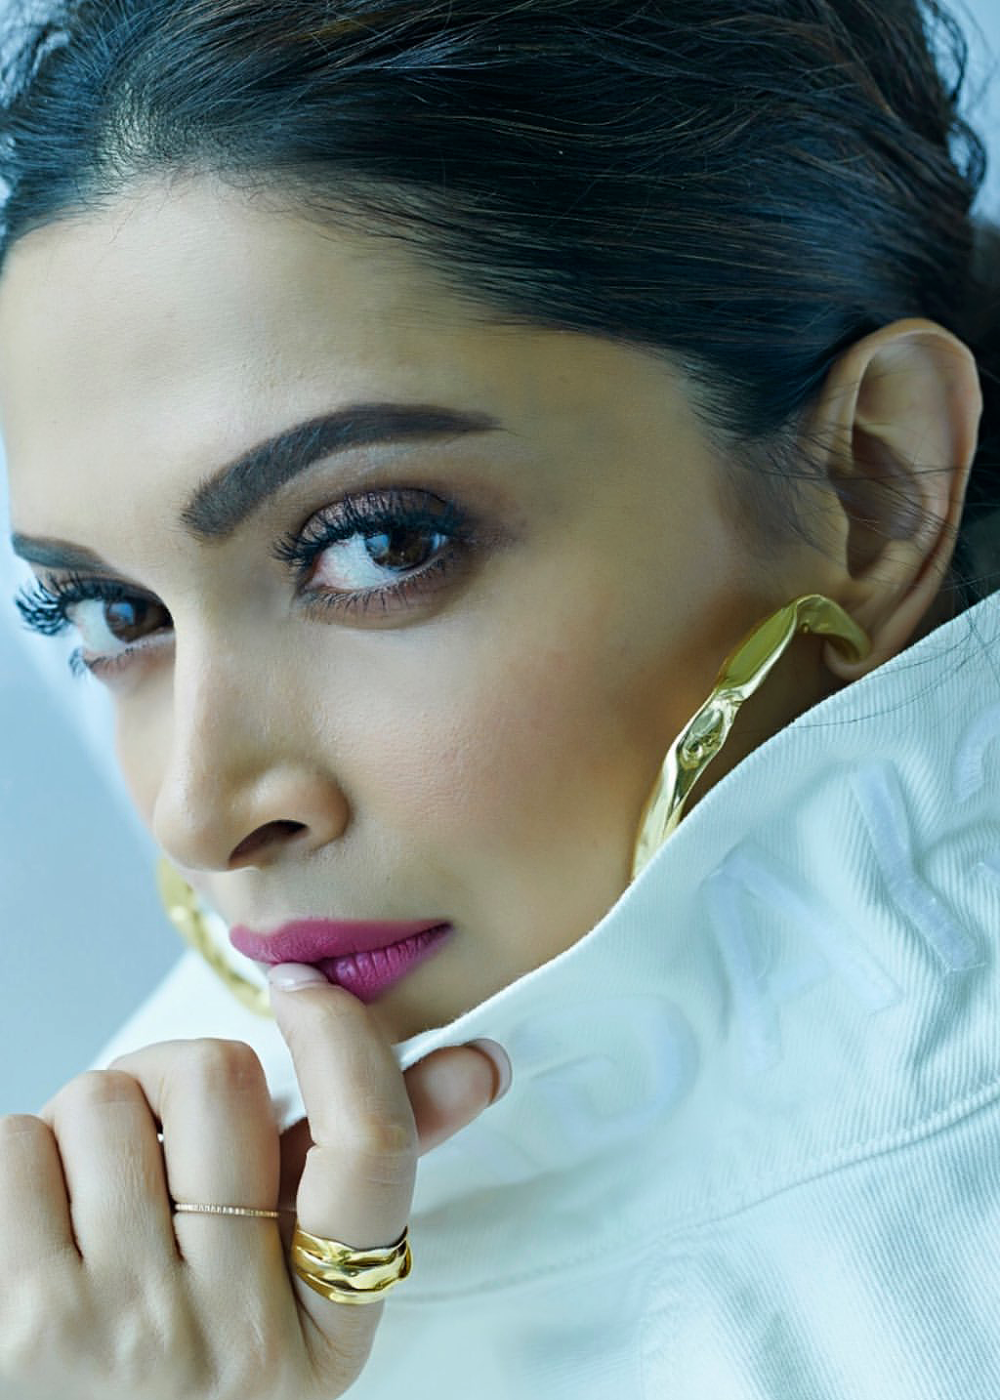 deepika in 2020 | Celebrity faces, Deepika padukone, Face ...